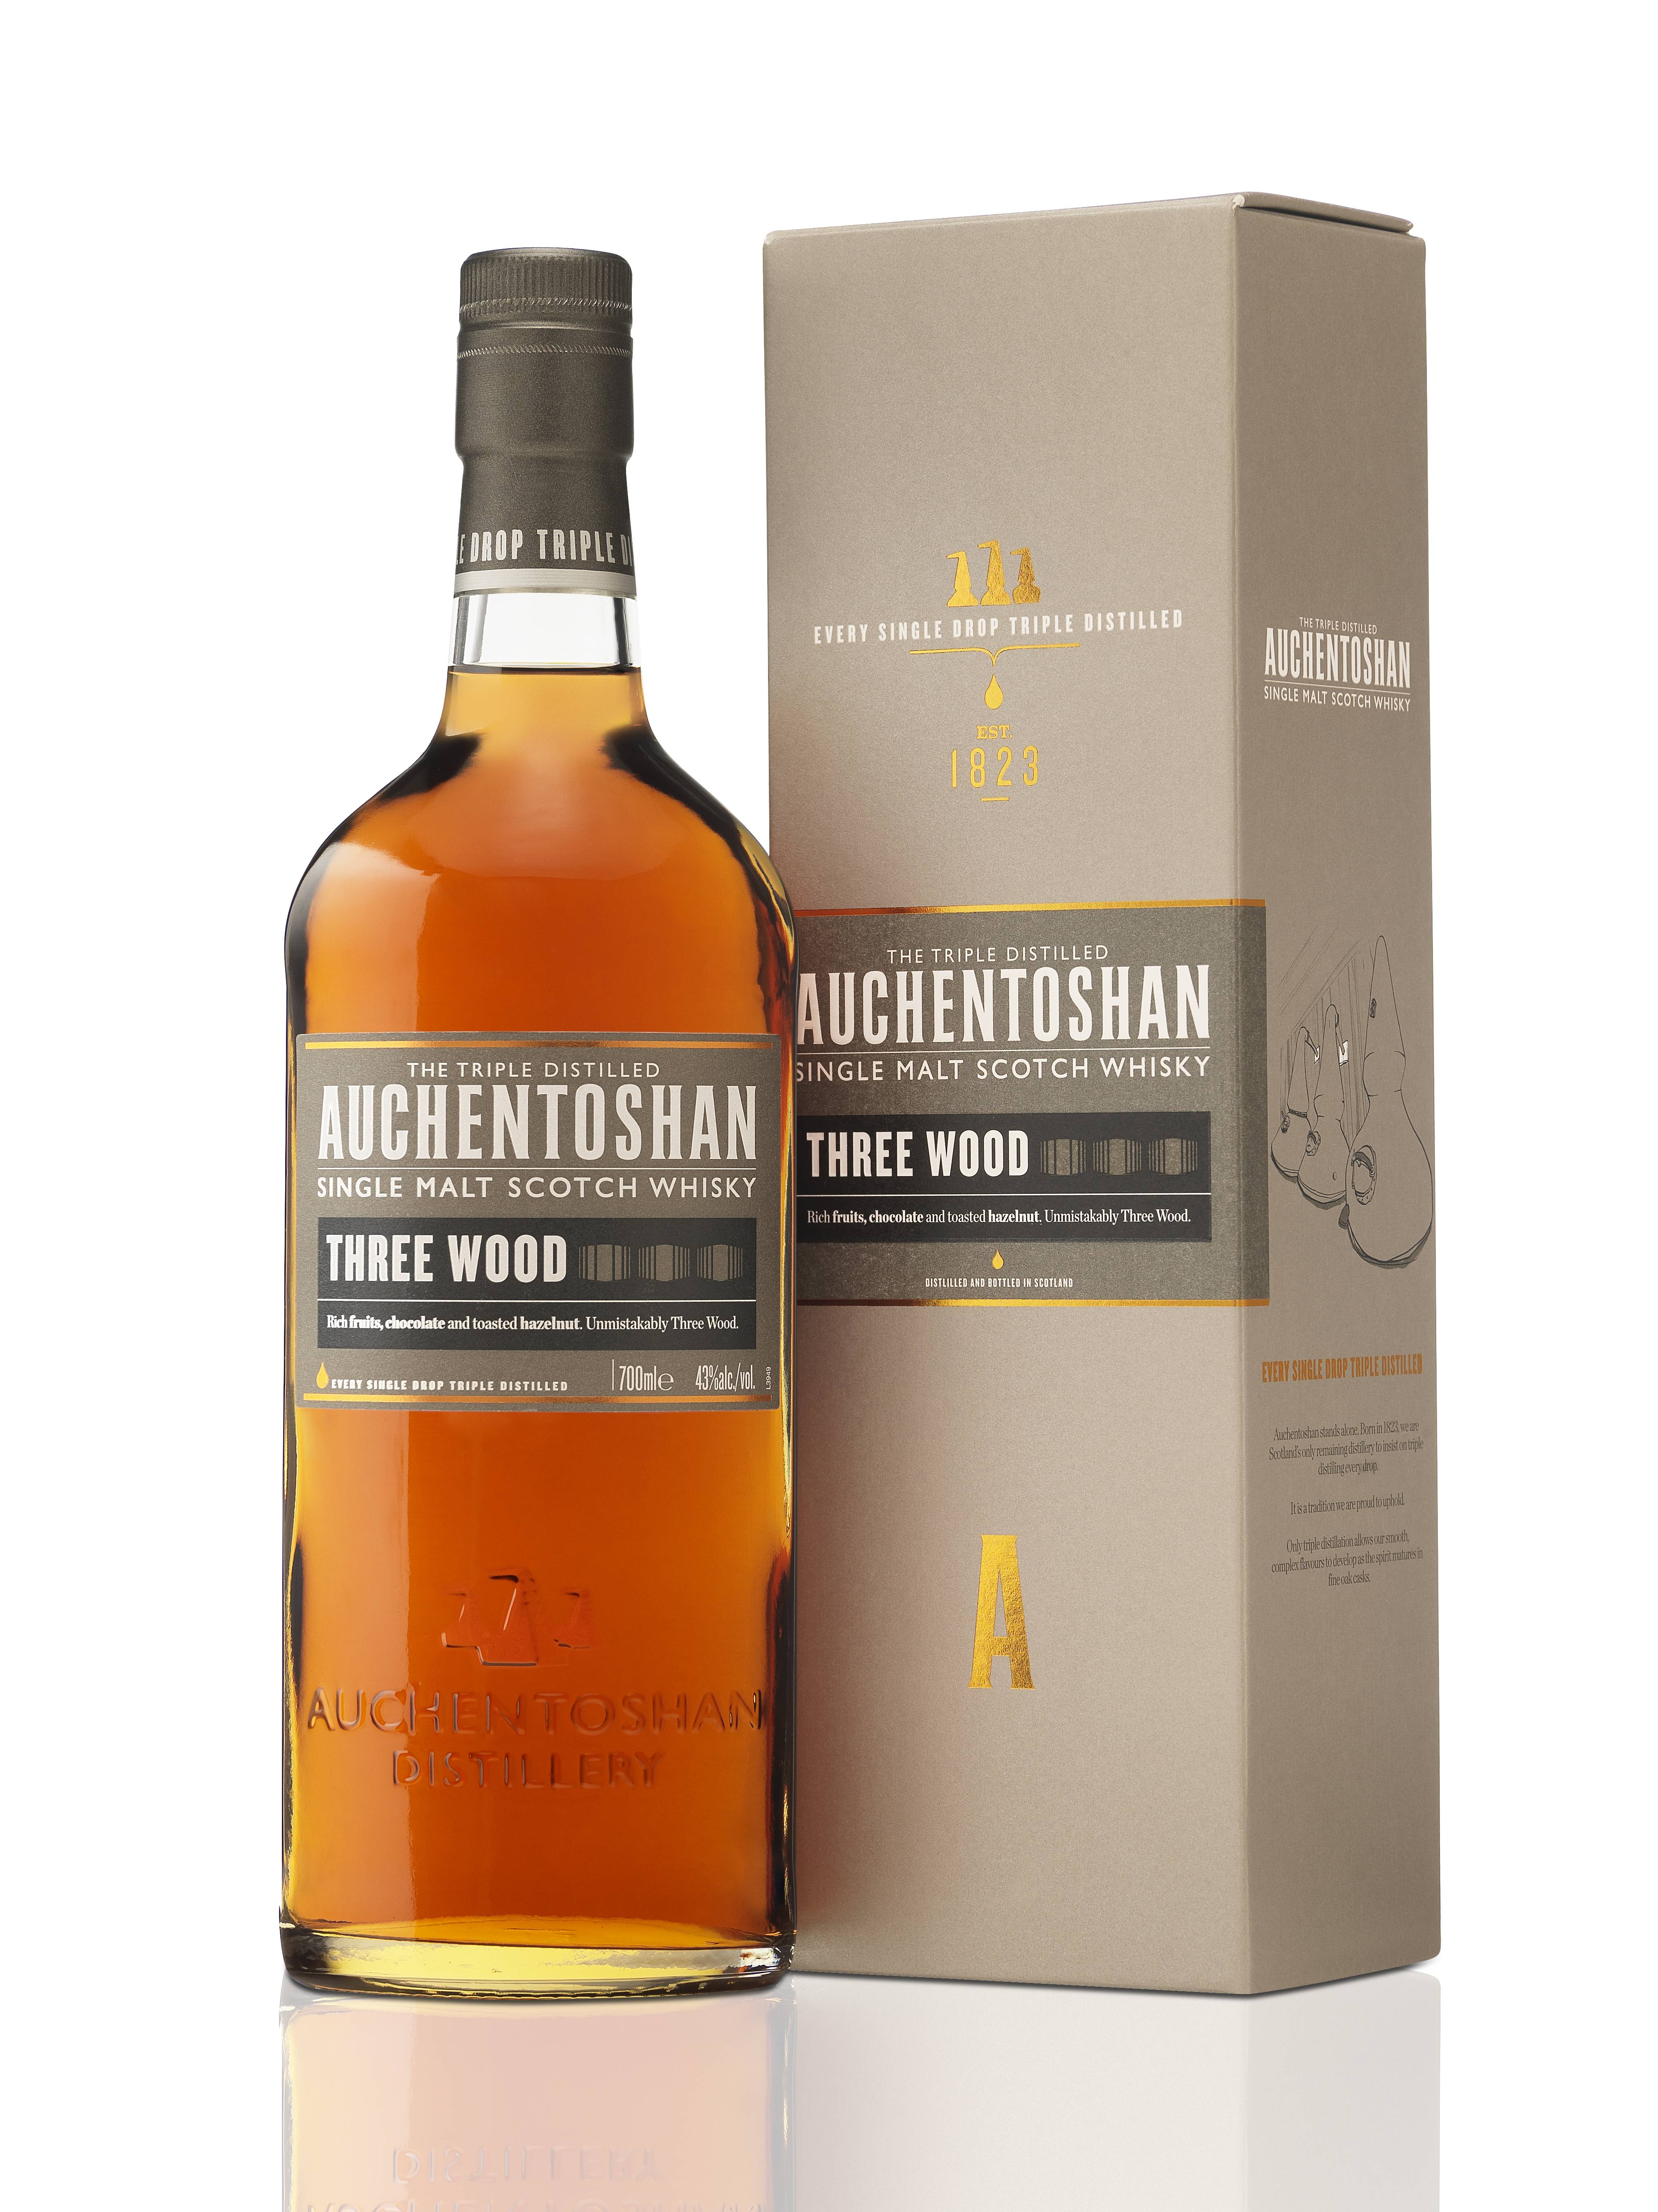 New Look Packaging For Auchentoshan 12 Years Old And